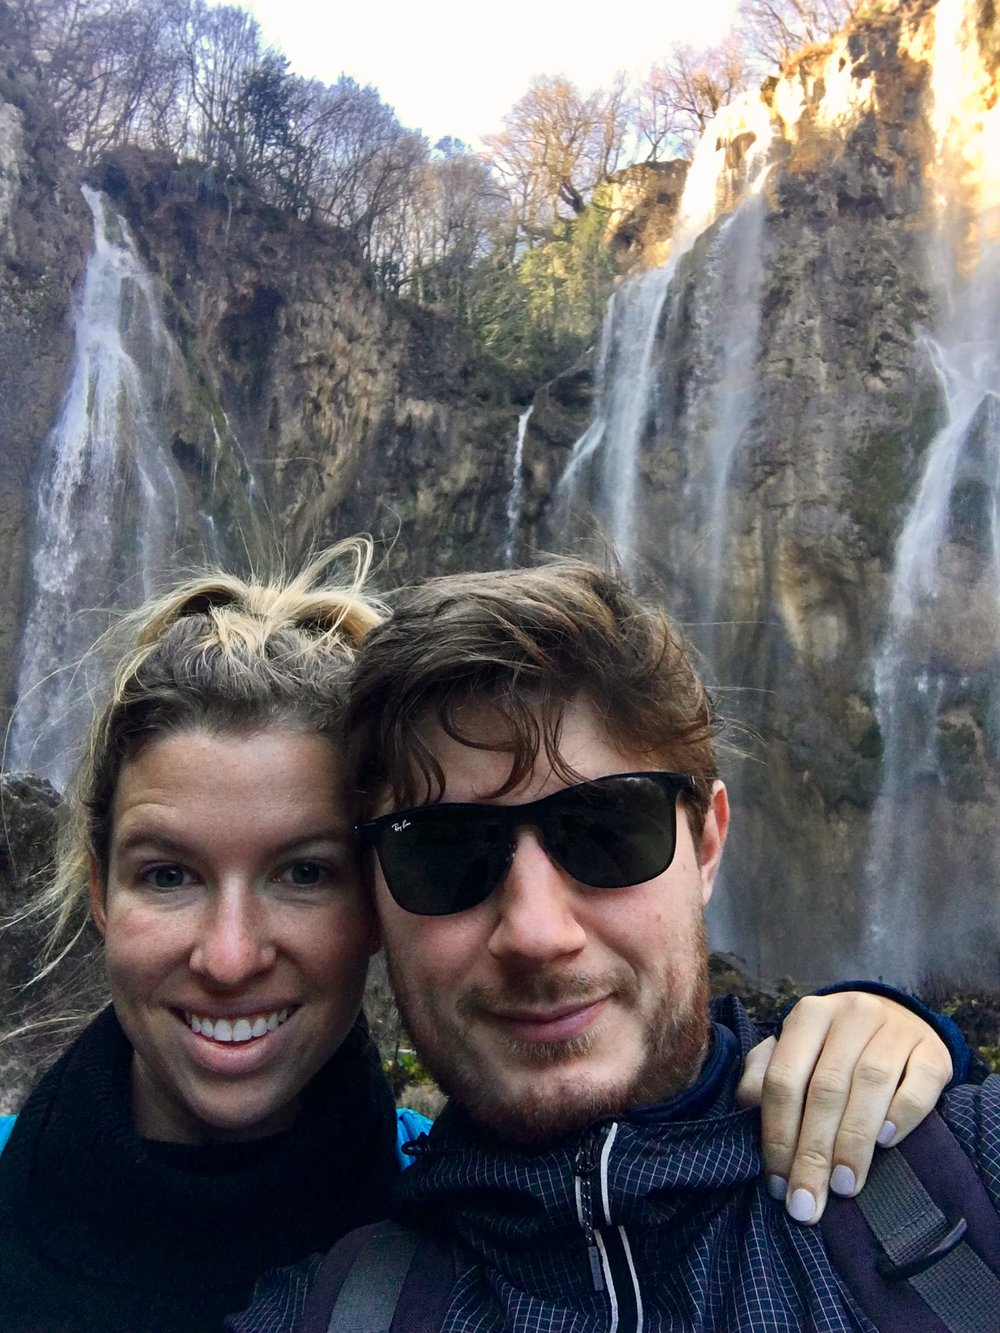 With the boo by a 'slap'. The word for 'waterfall' in Croatian is 'slap'.That's funny. He makes me giggle.